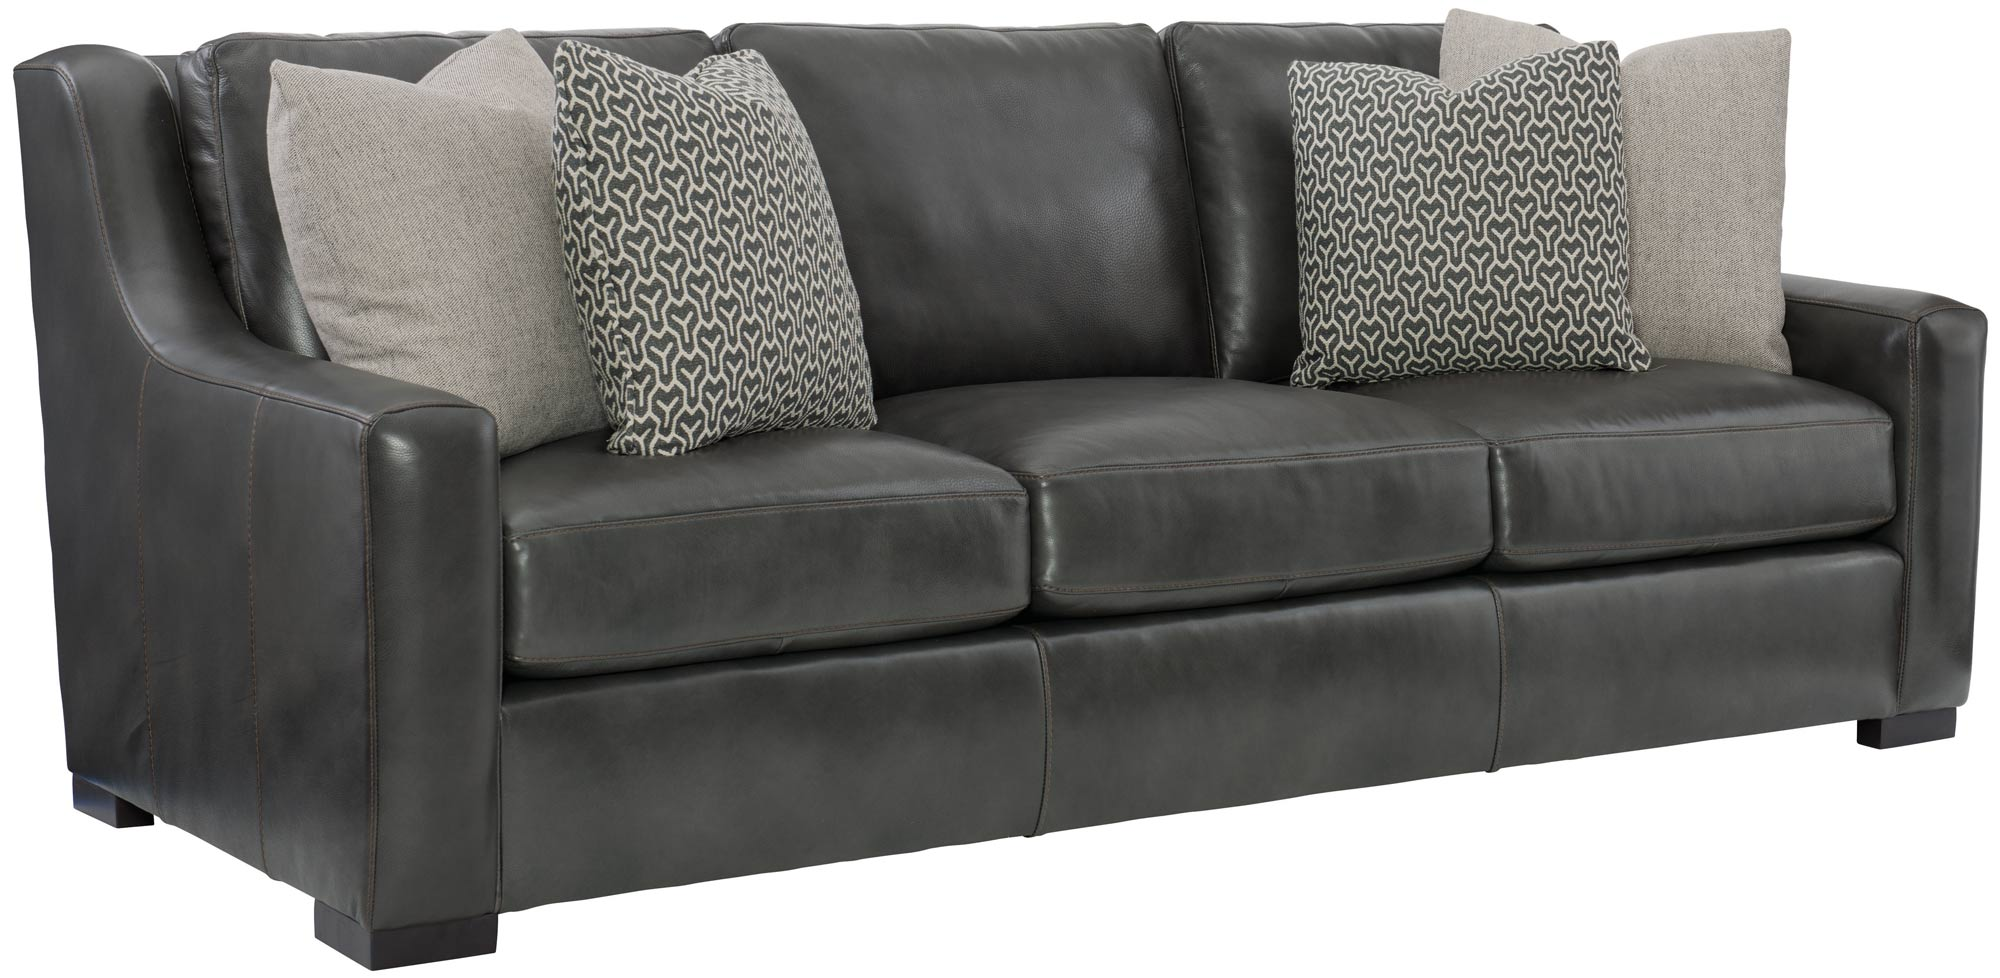 bernhardt sofas clearance standard sofa dimensions in cm